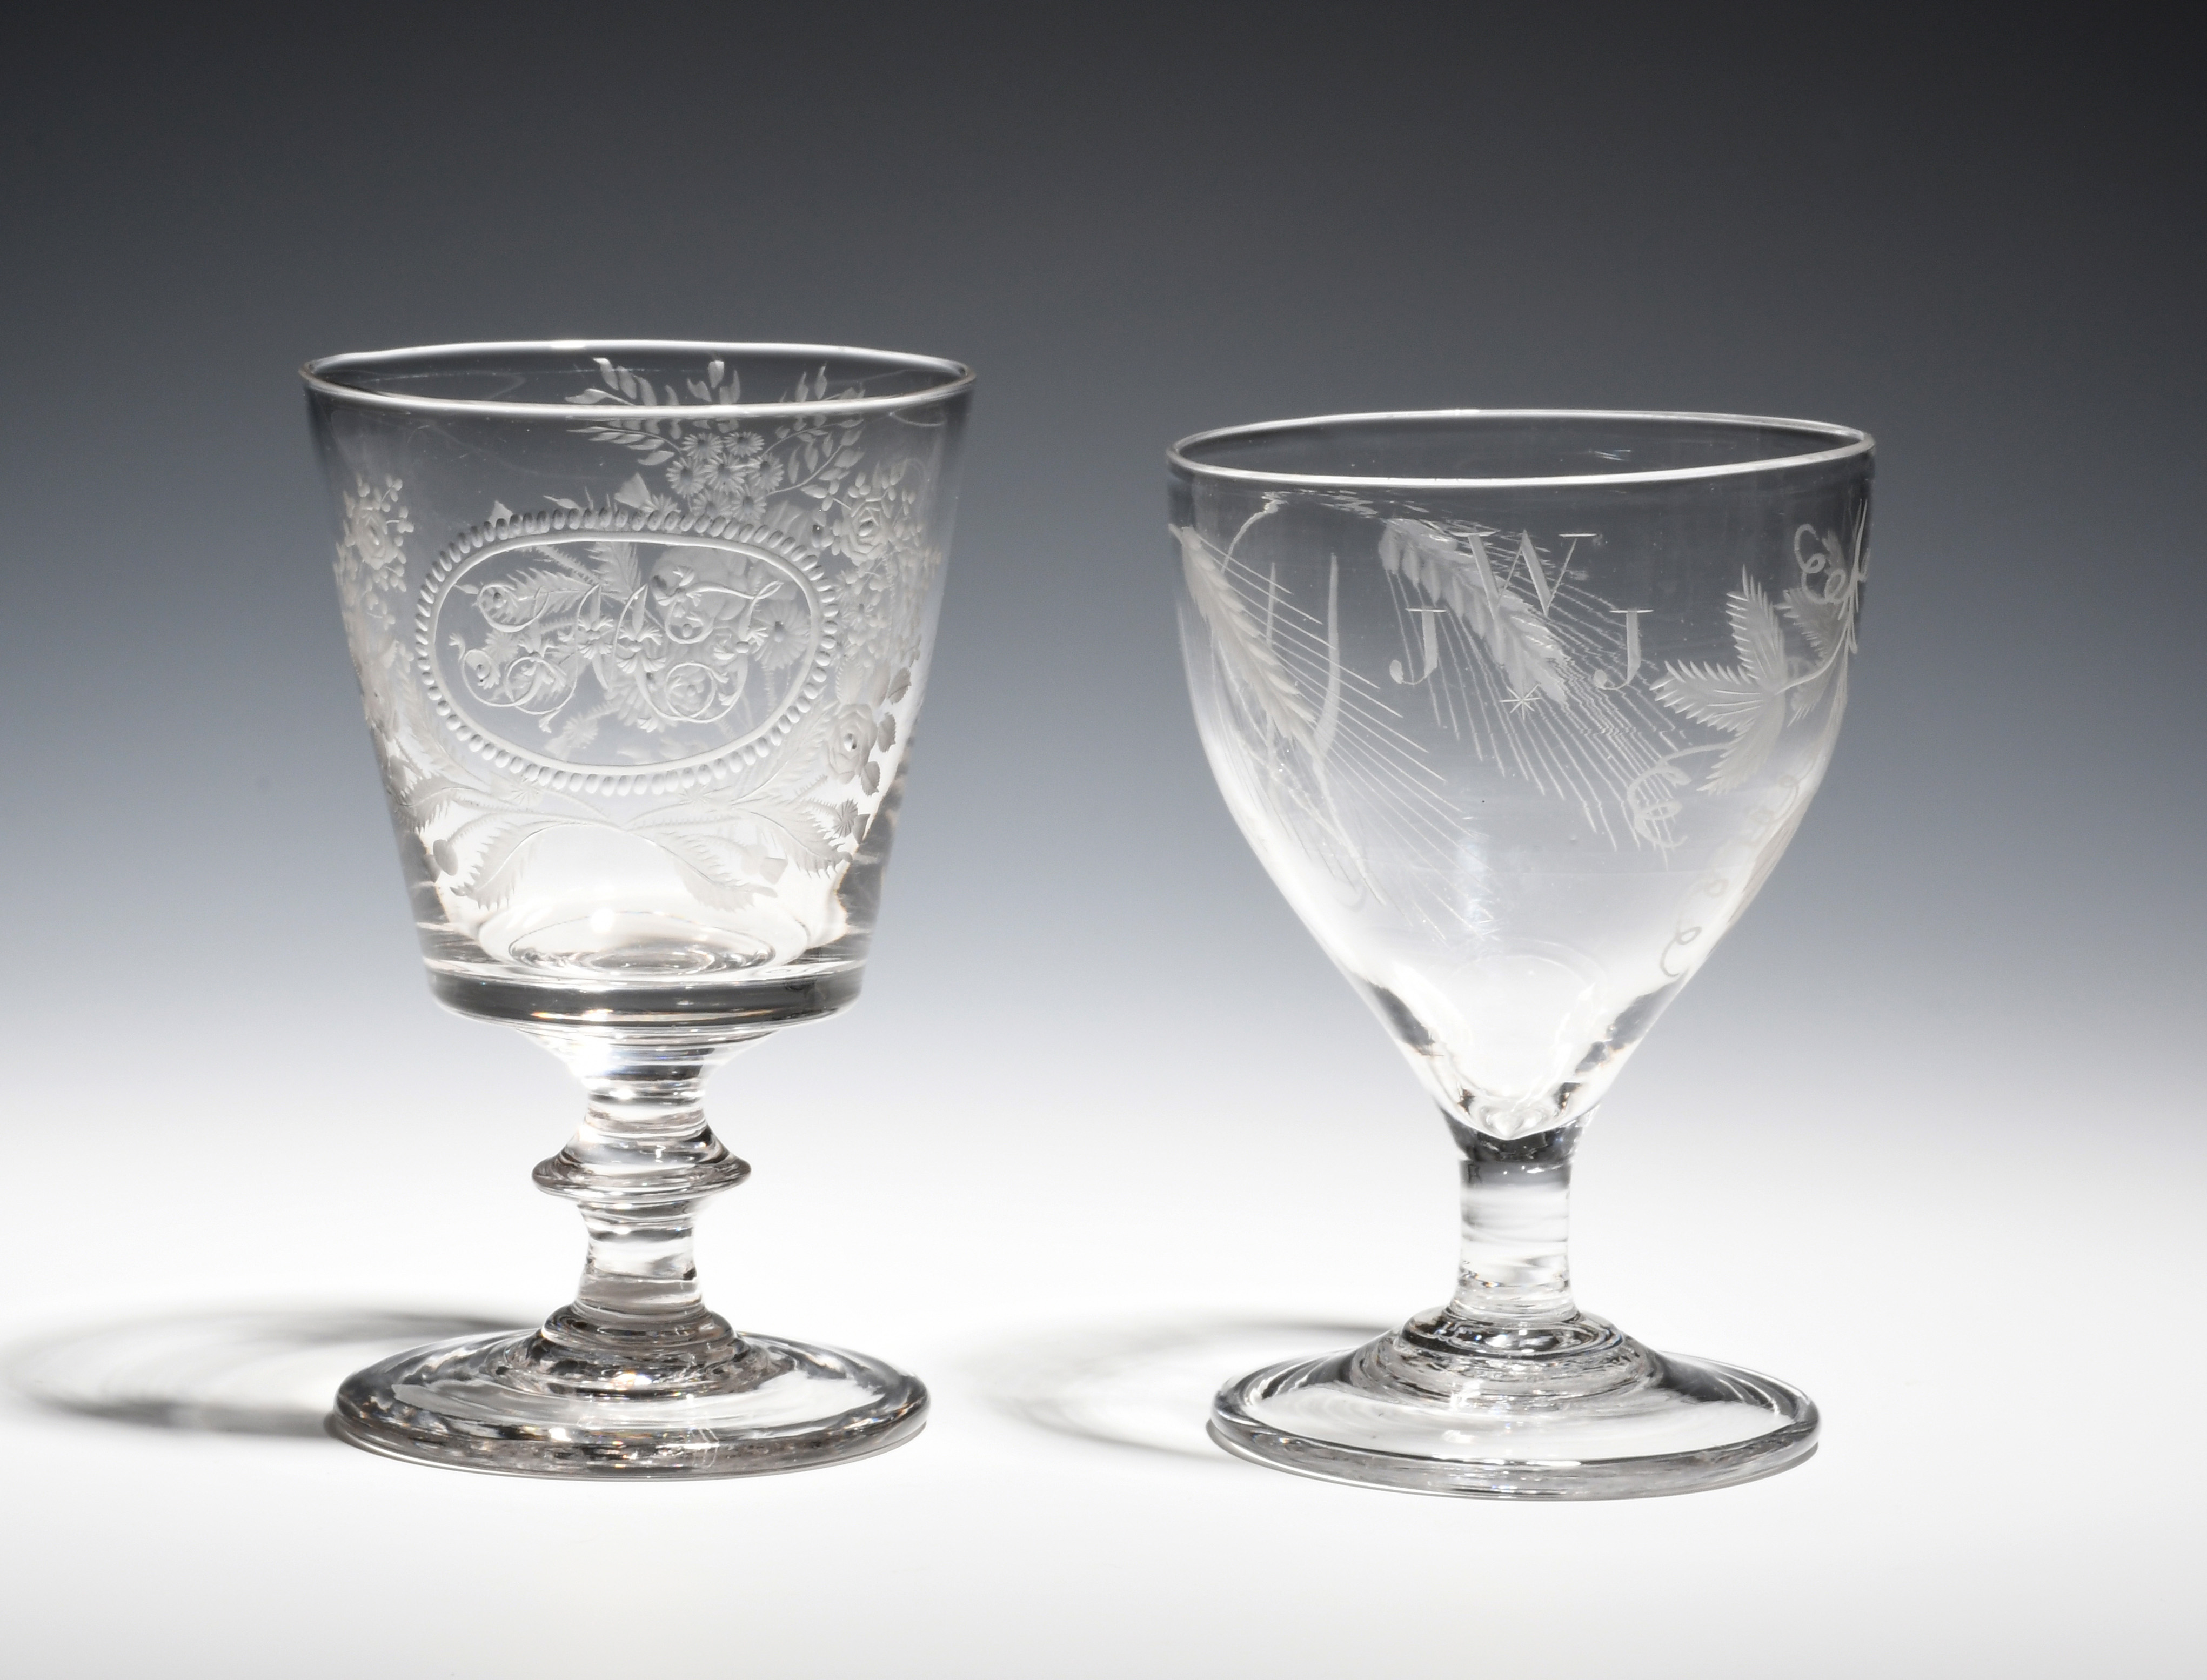 Two glass rummers c.1790-1830, one engraved with hops and barley and the initials 'WJJ', the other